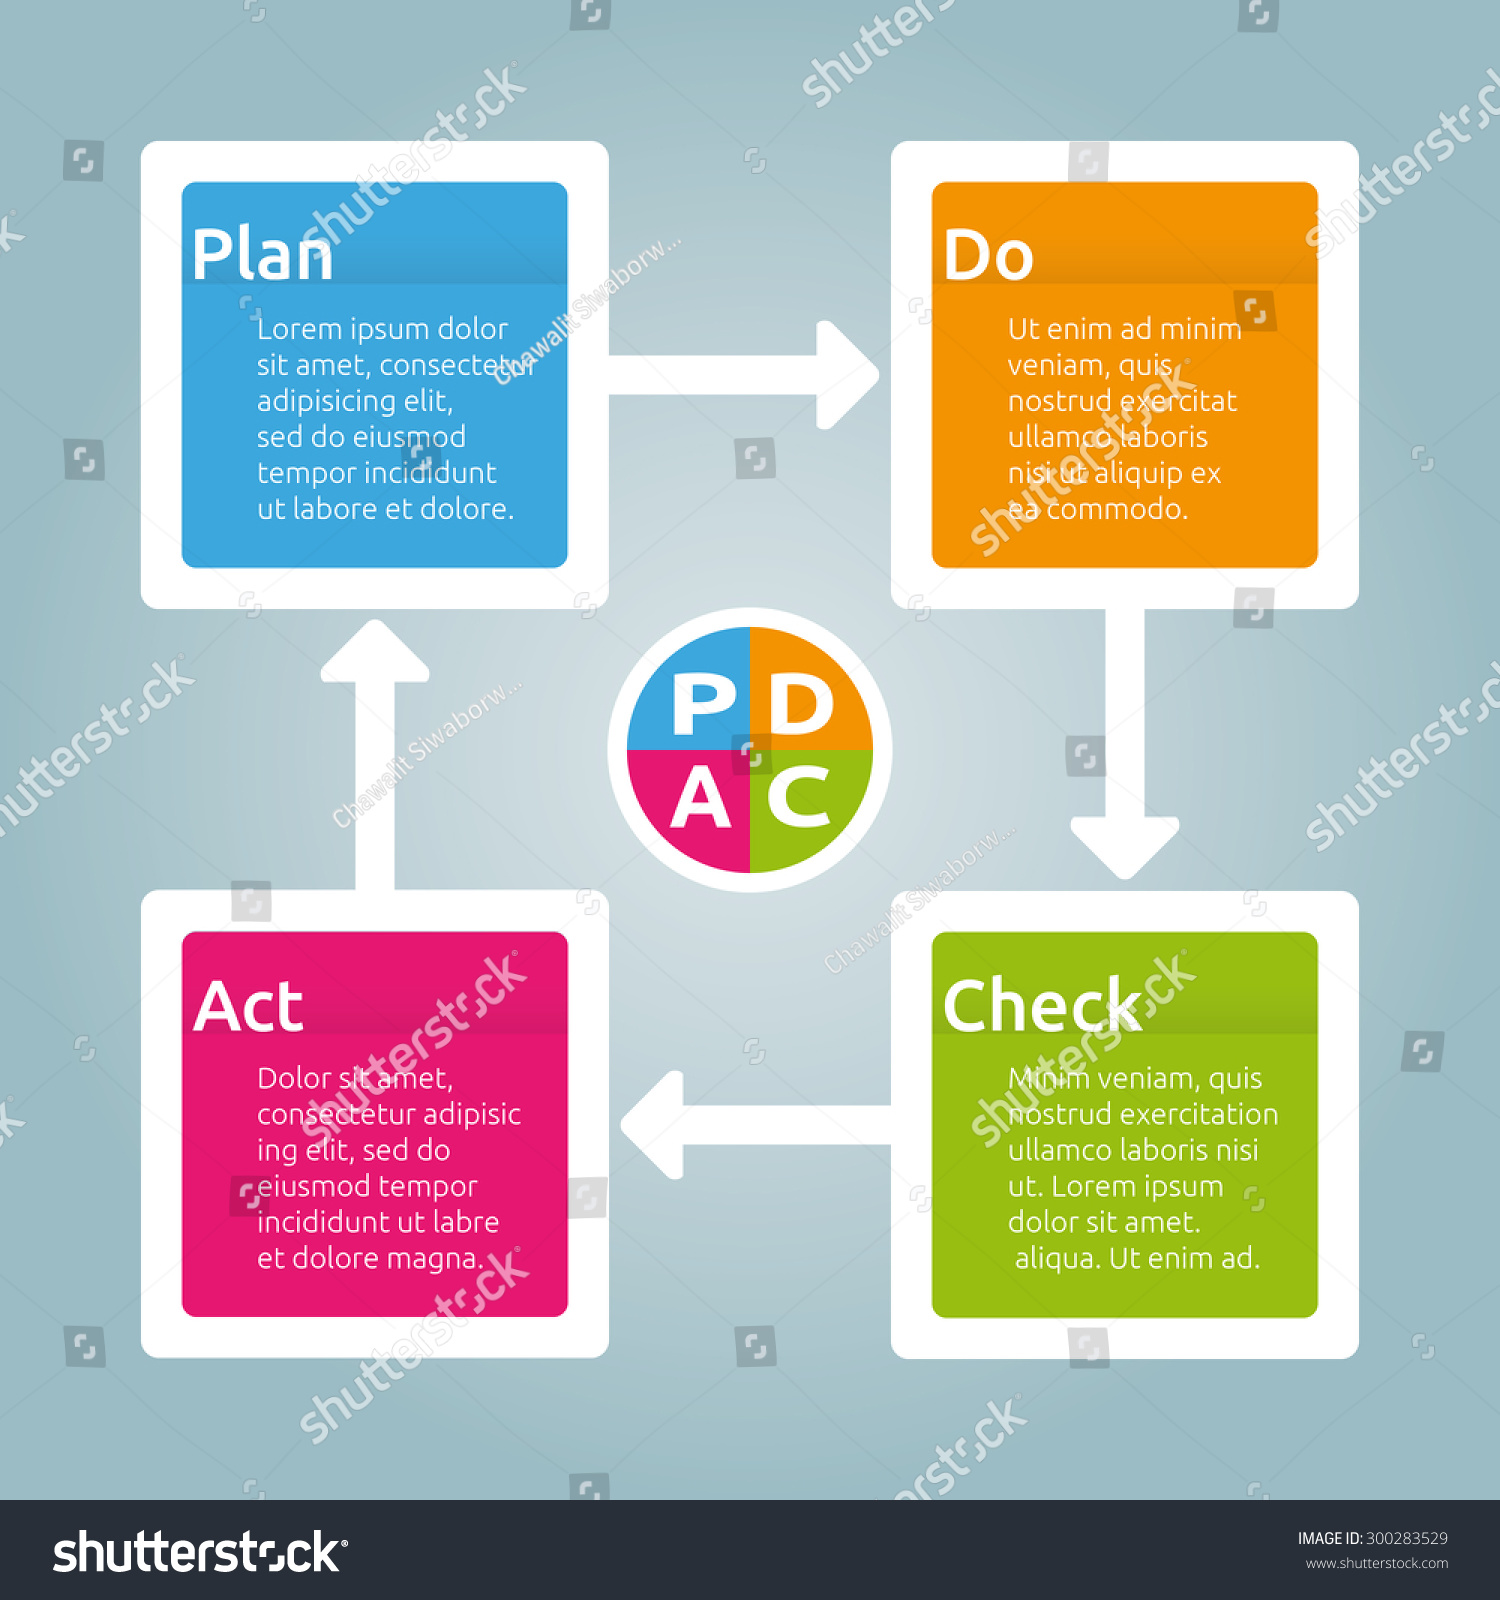 pdca diagram   plan do check act   four step workflow graphic    pdca diagram   plan do check act   four step workflow graphic elements preview  save to a lightbox